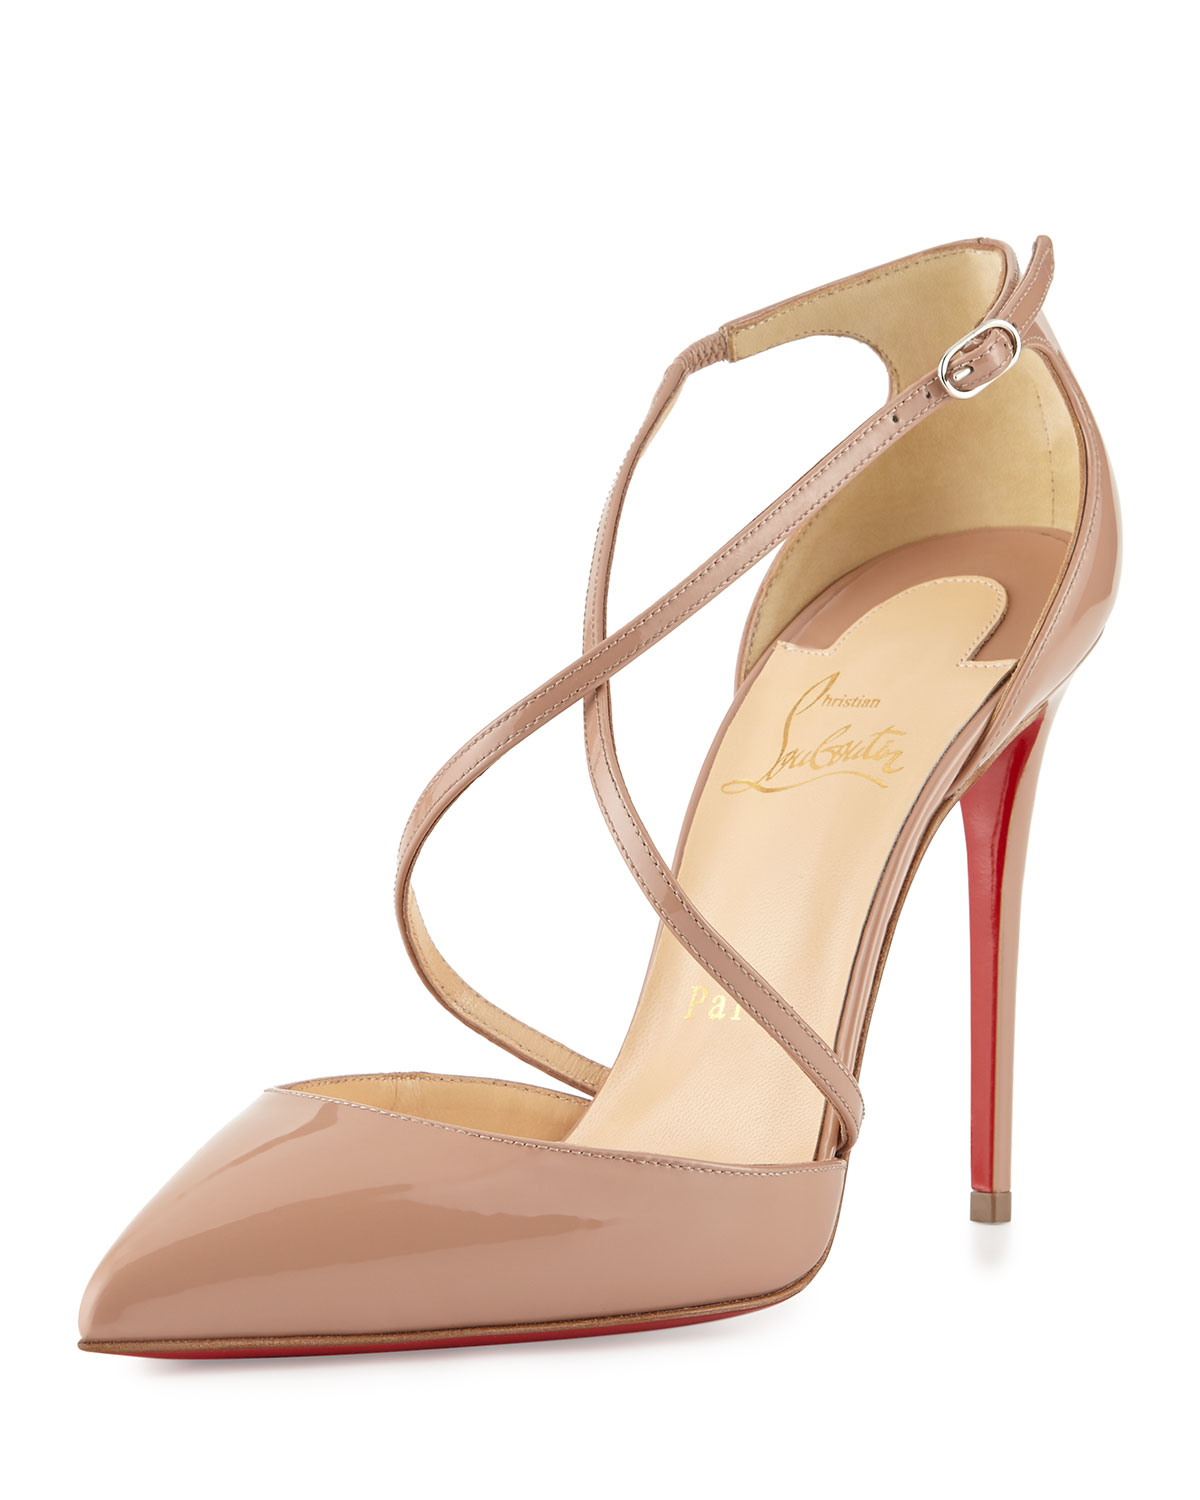 christian louboutin pigalle follies 100mm patent leather pointed toe pumps  pinky; gallery